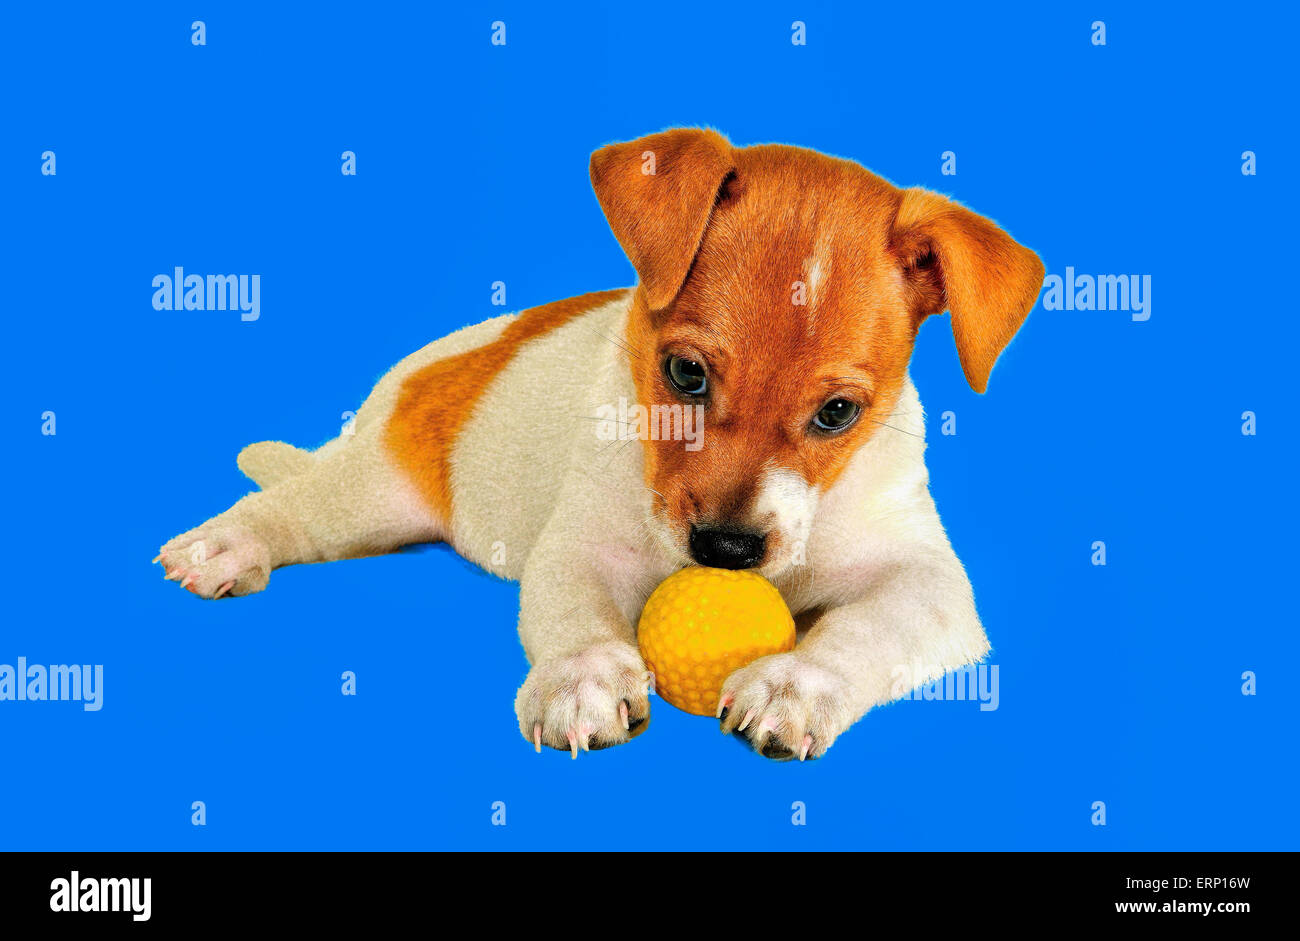 puppy with a ball lies against a blue background this picture is